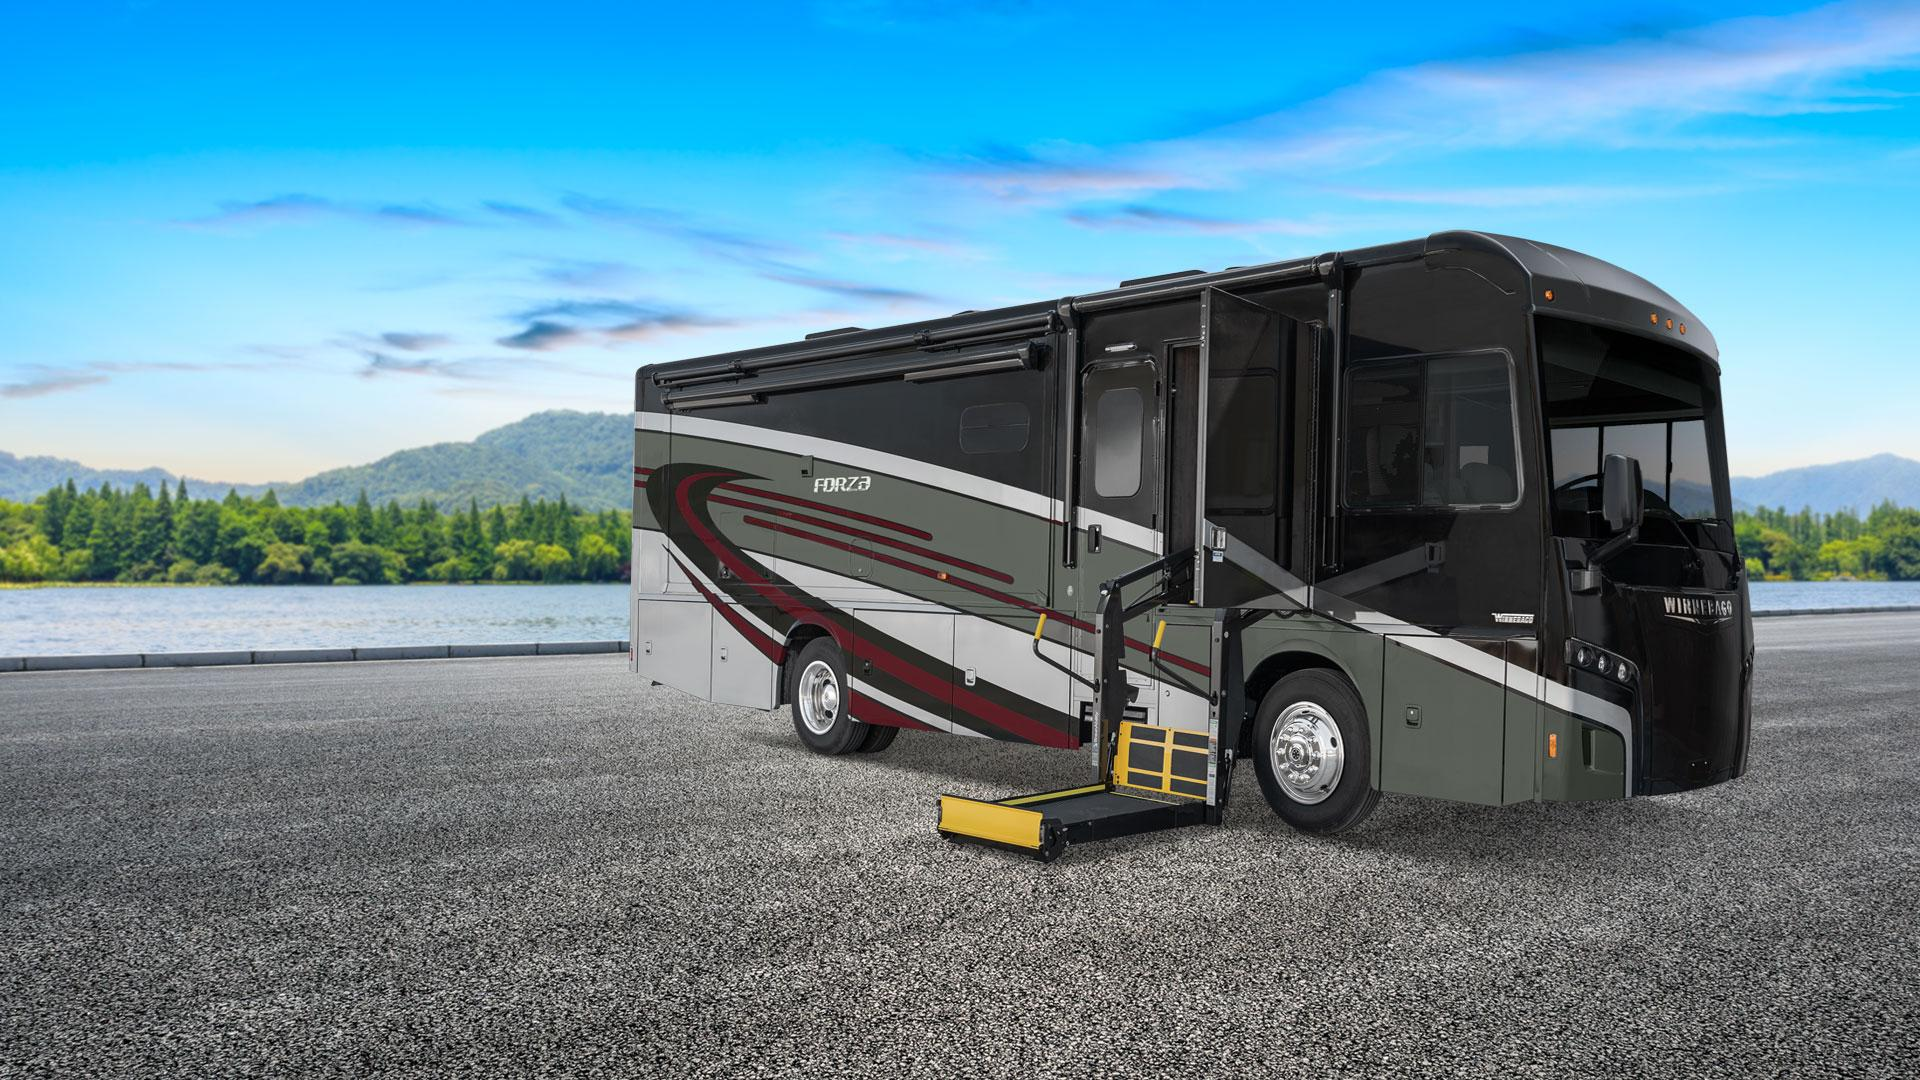 /Files/Images/Winnebago/Products/2020/Forza-AE/FZ-AE-Banners-Web-20.jpg